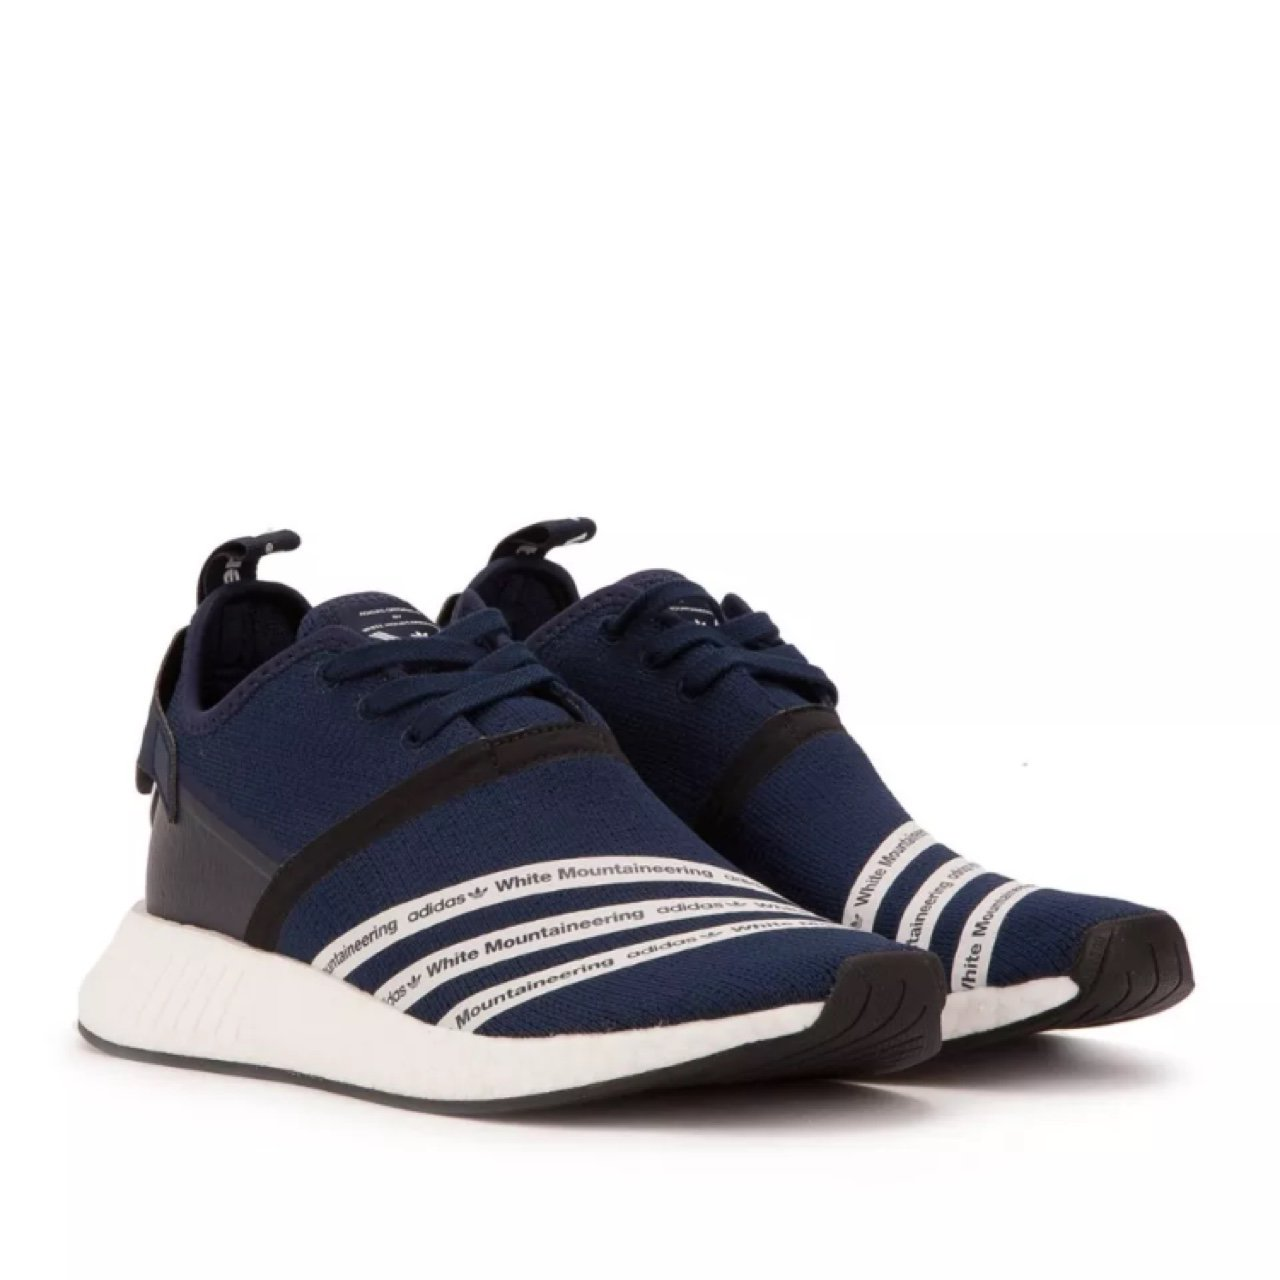 Adidas White Mountaineering NMD PK2 US 8DS In hand ready to